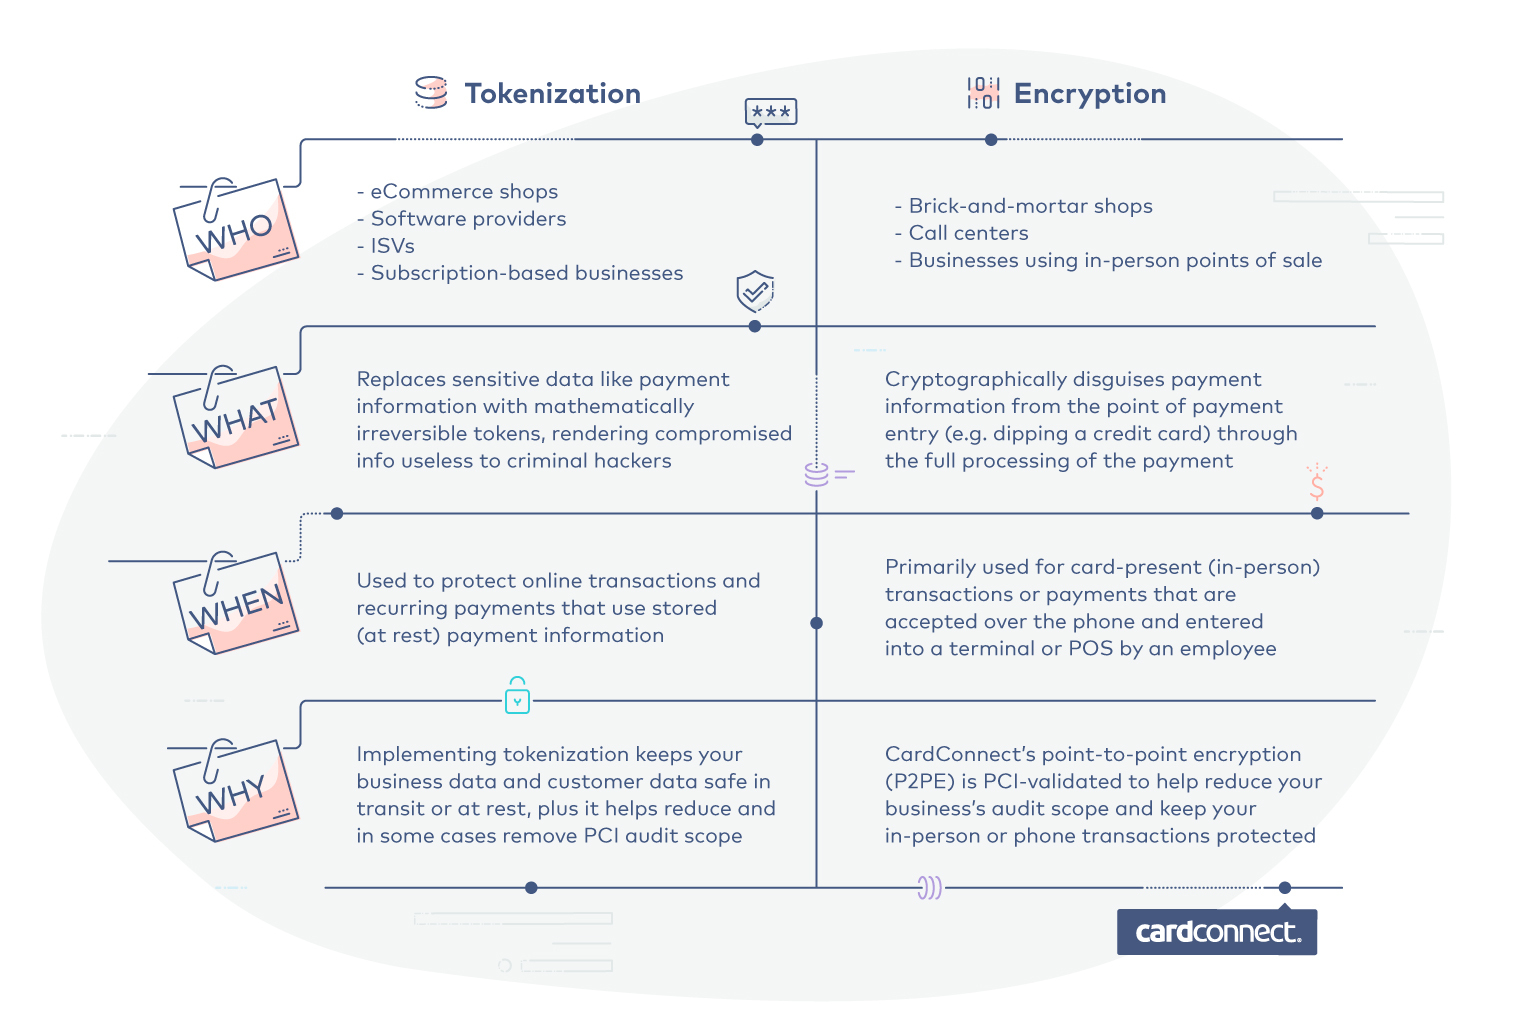 Tokenization Vs Encryption. What's the difference?